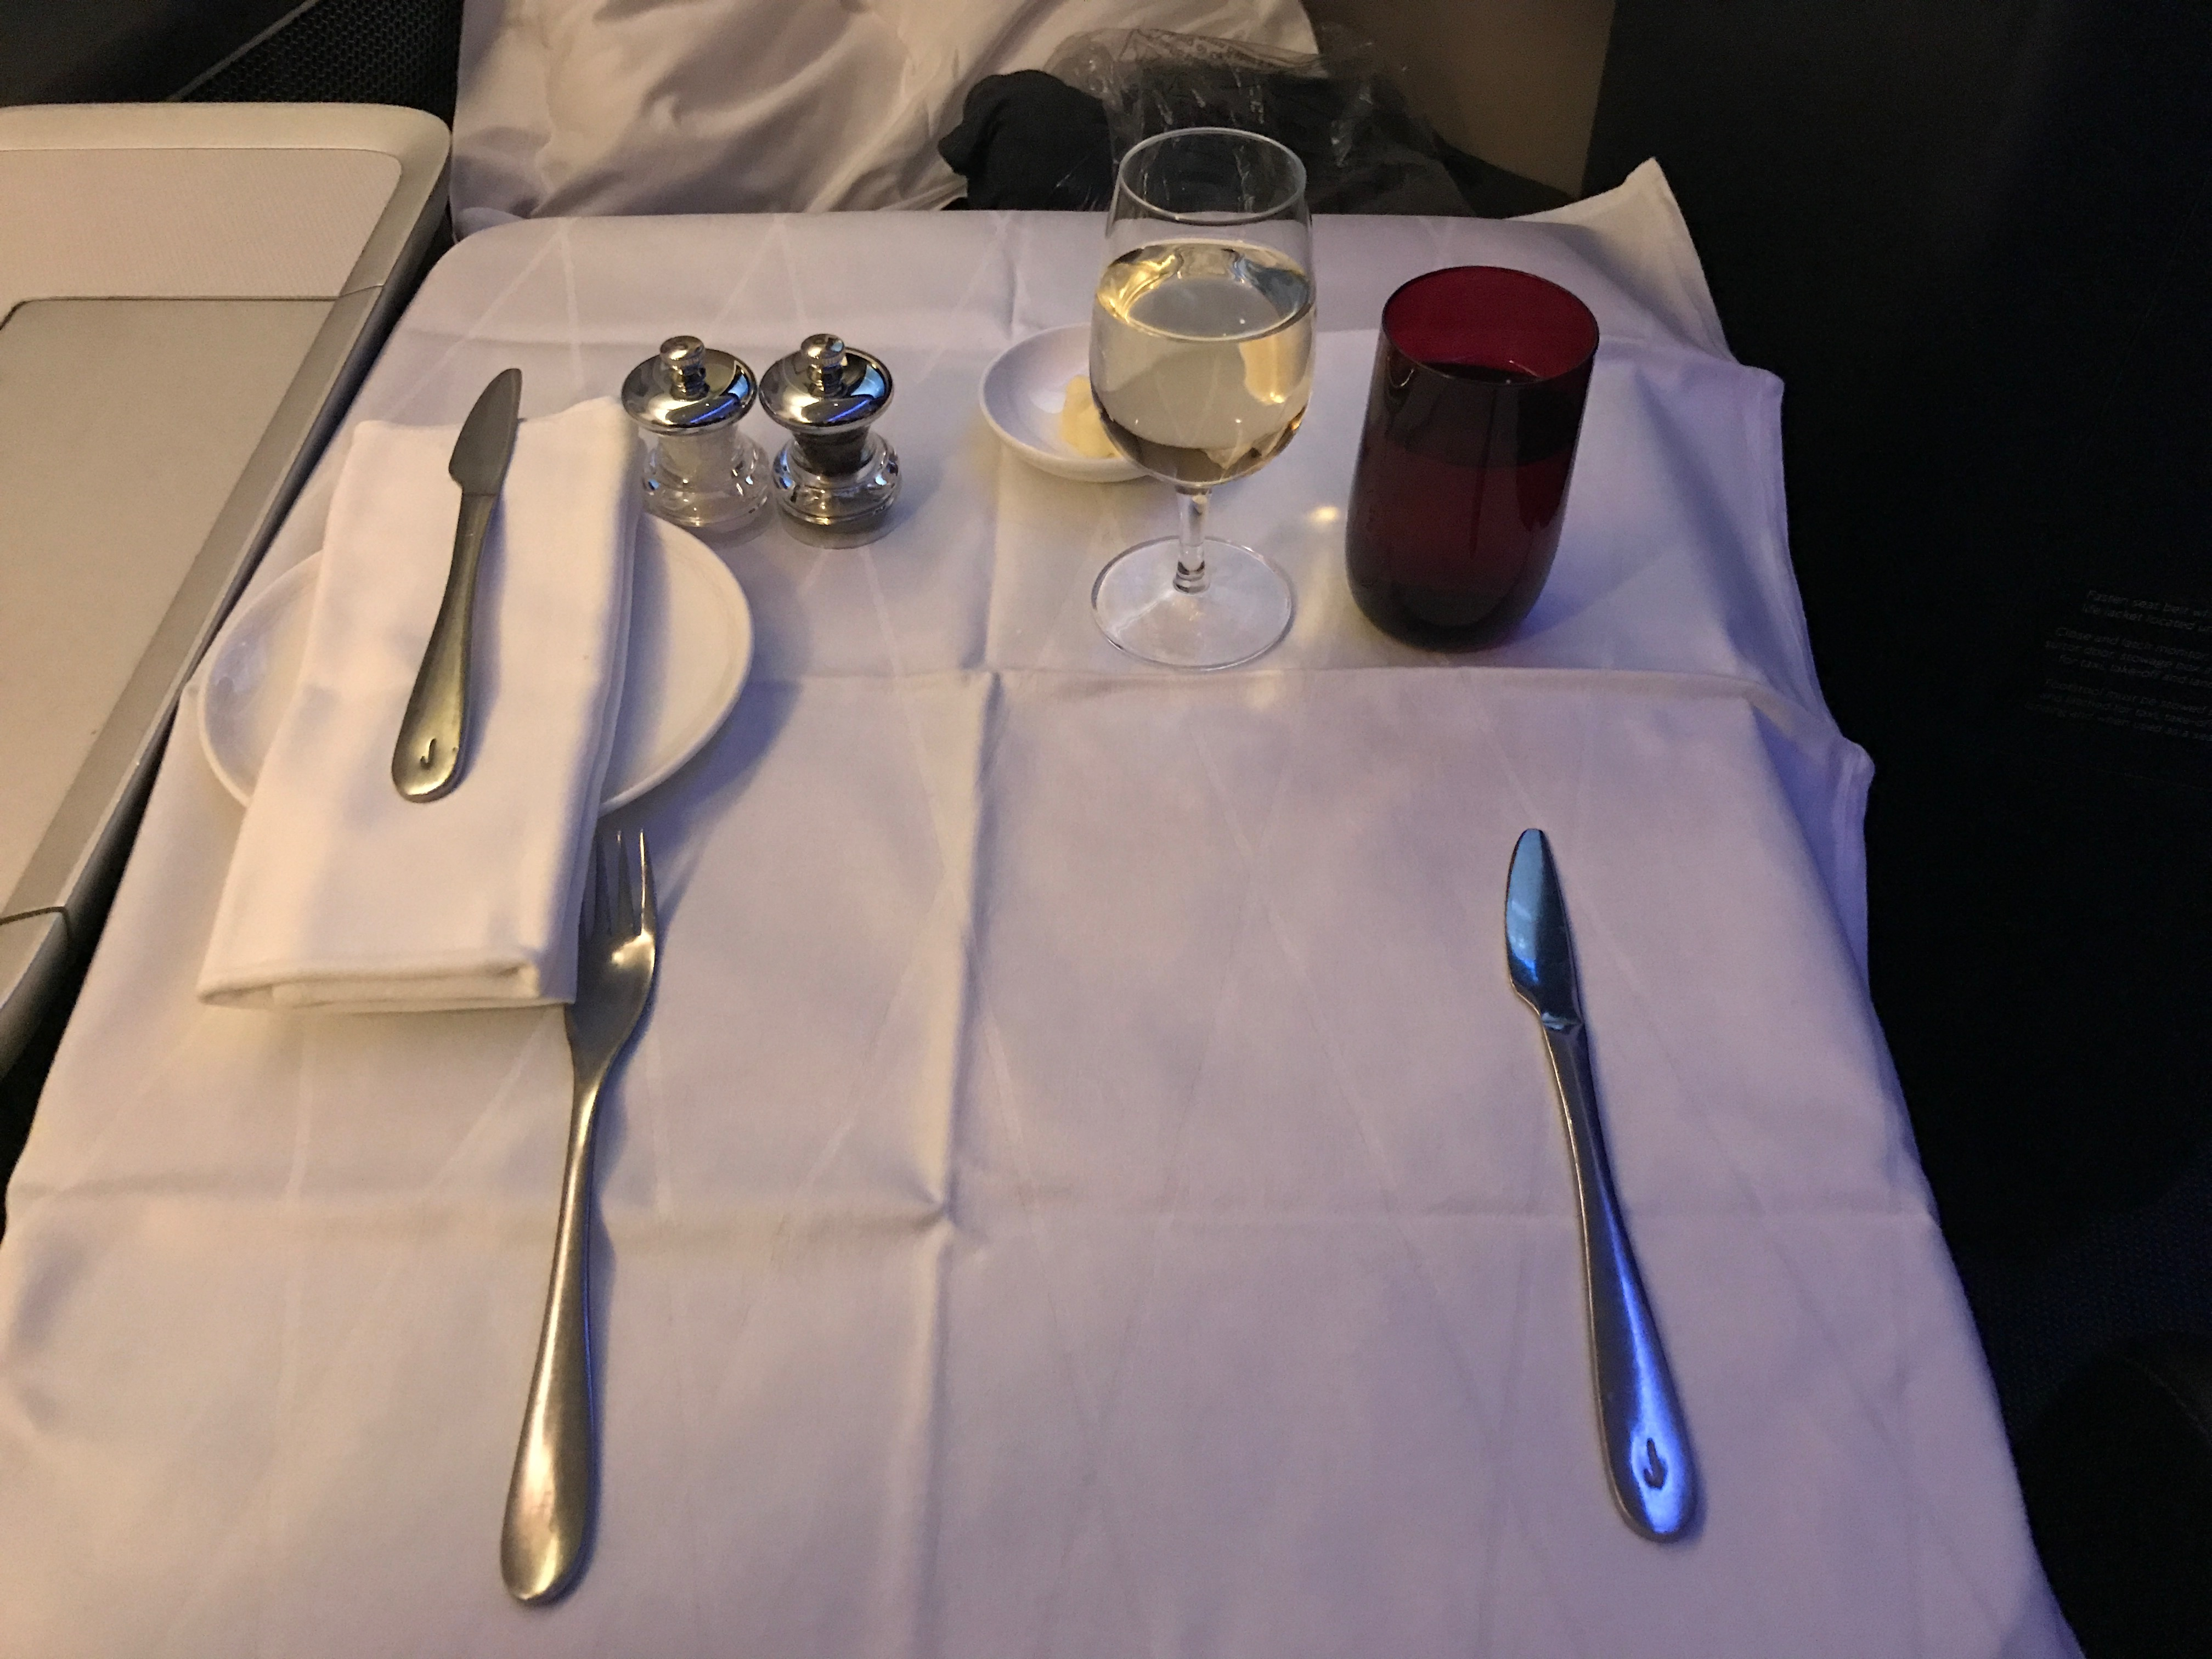 British Airways first class table laid out